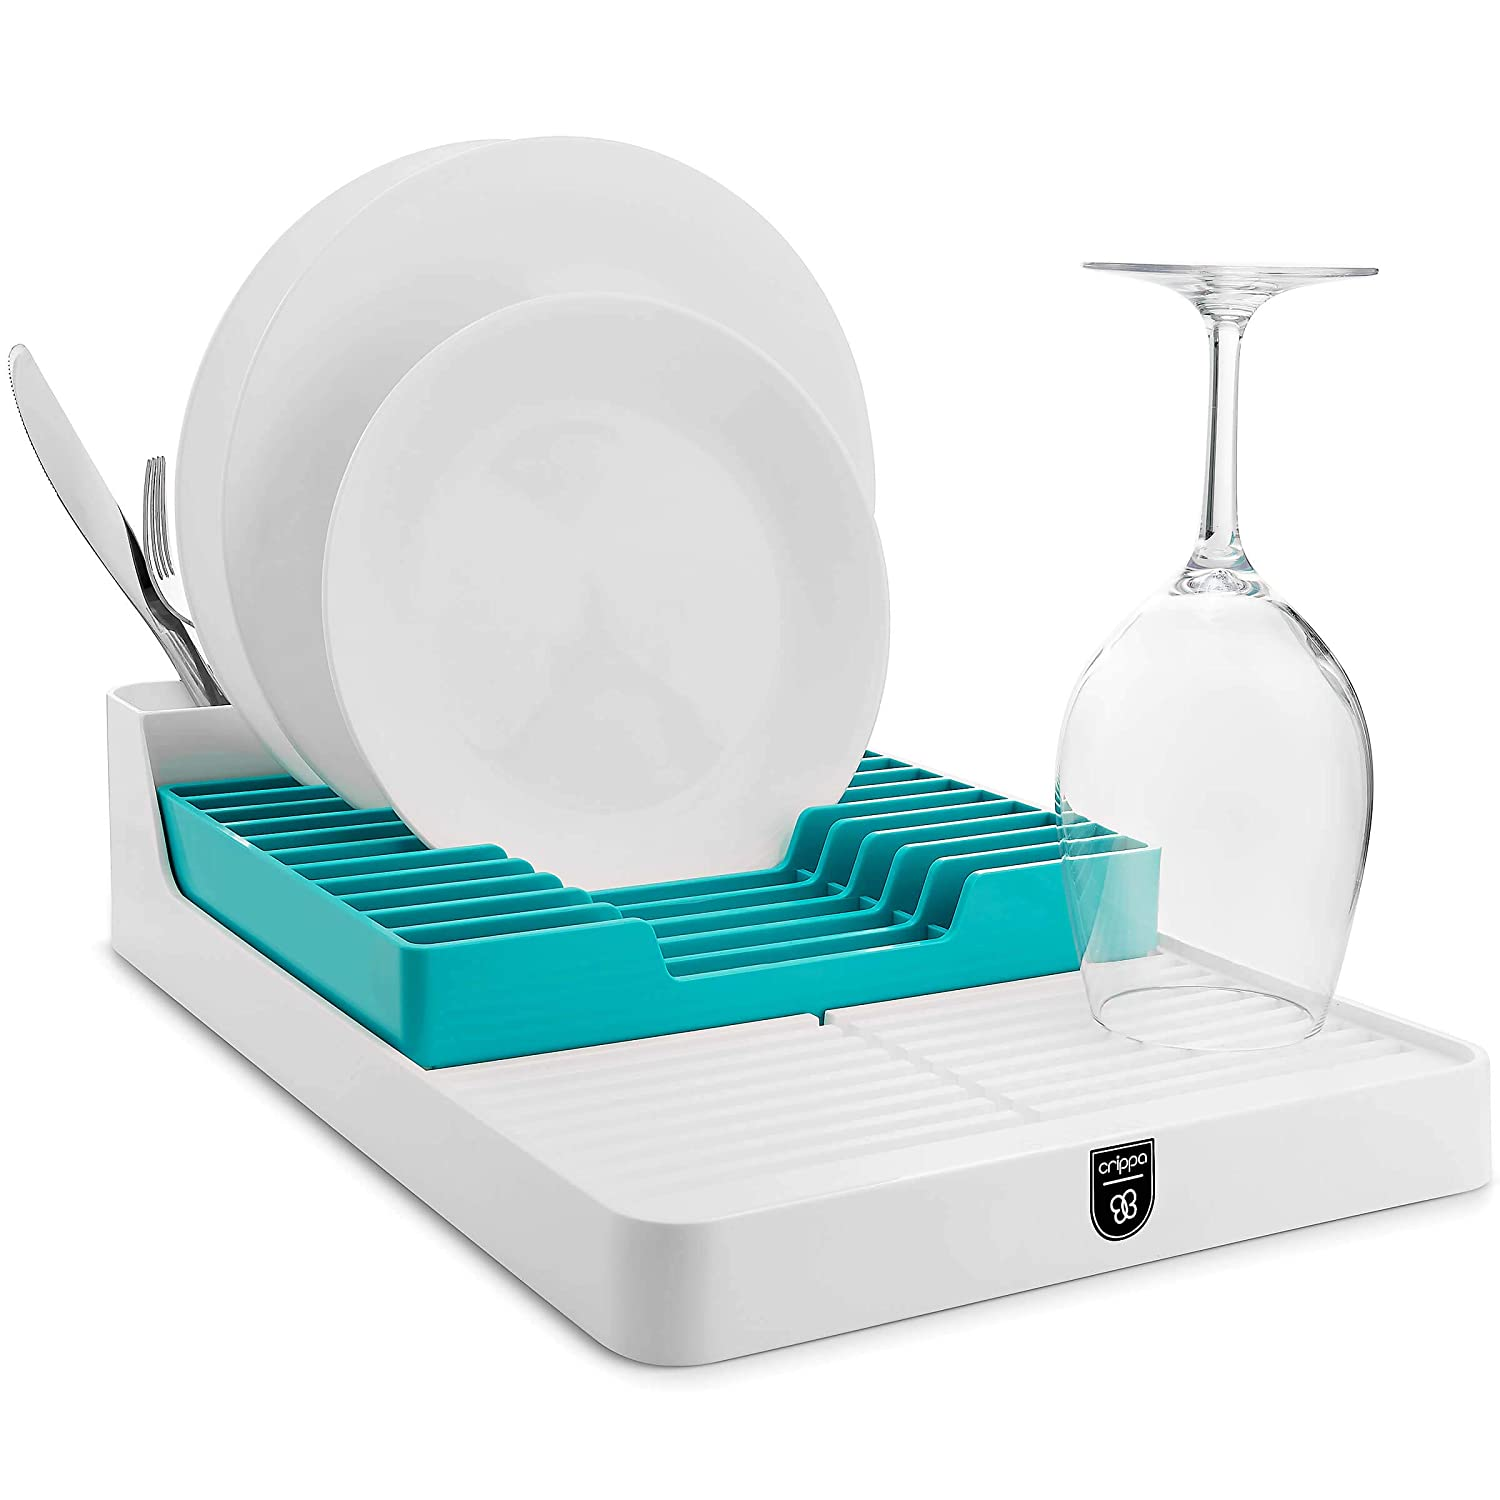 Amazon.com: Crippa - Escurreplatos de cocina con ...